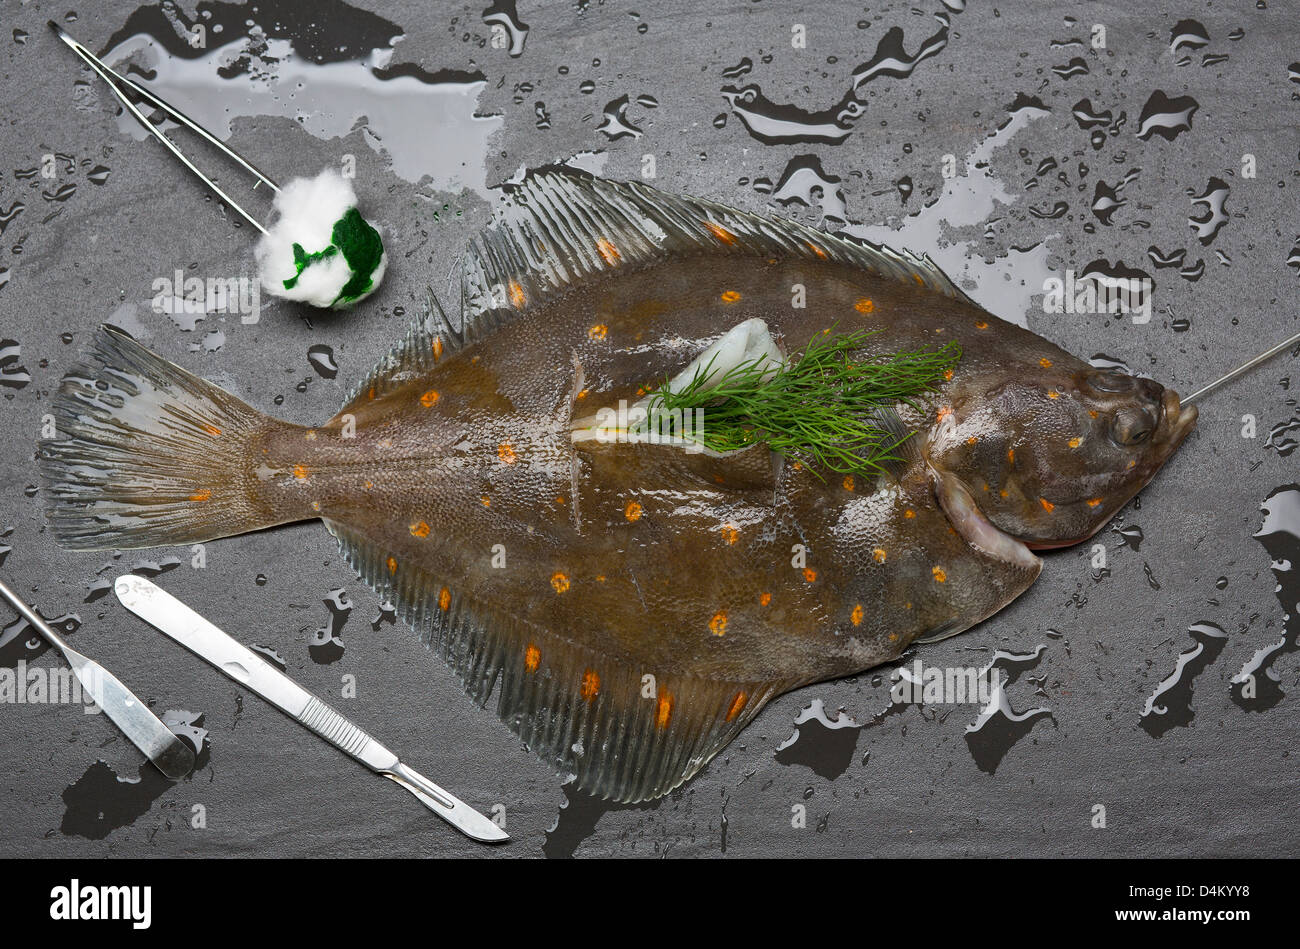 Fresh fish surgically stuffed with herbs - Stock Image